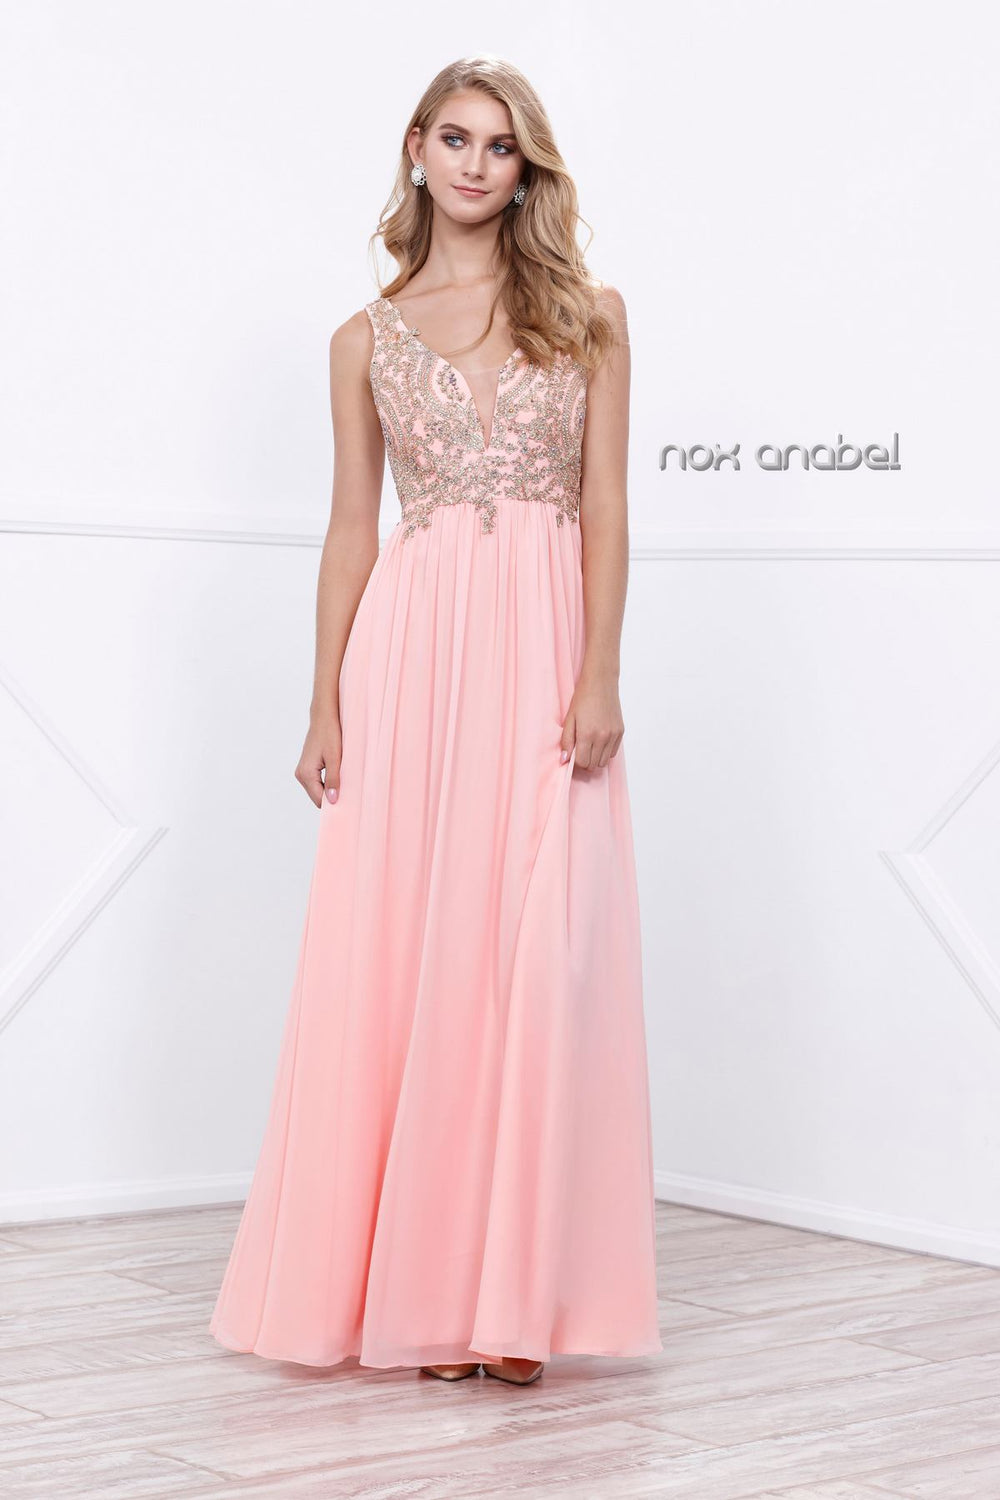 V NECK LACE BODICE FULL LENGTH PROM DRESS #8343 BY NARIANNA